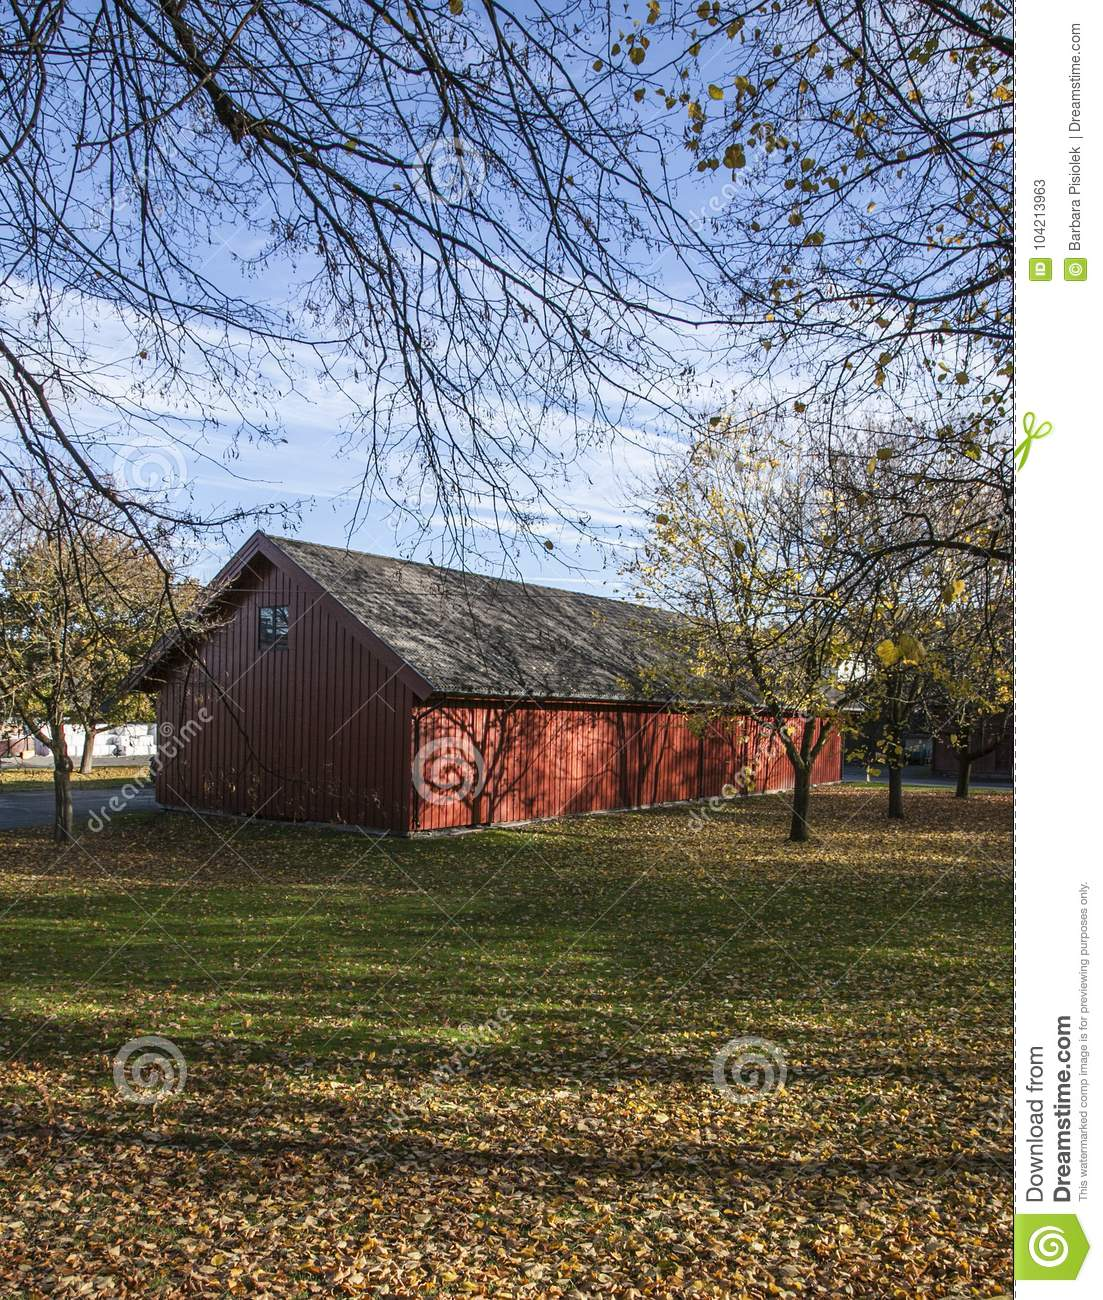 bb5cc35c Park, Oslo, Trees And A Barn. Stock Image - Image of 2017 ...